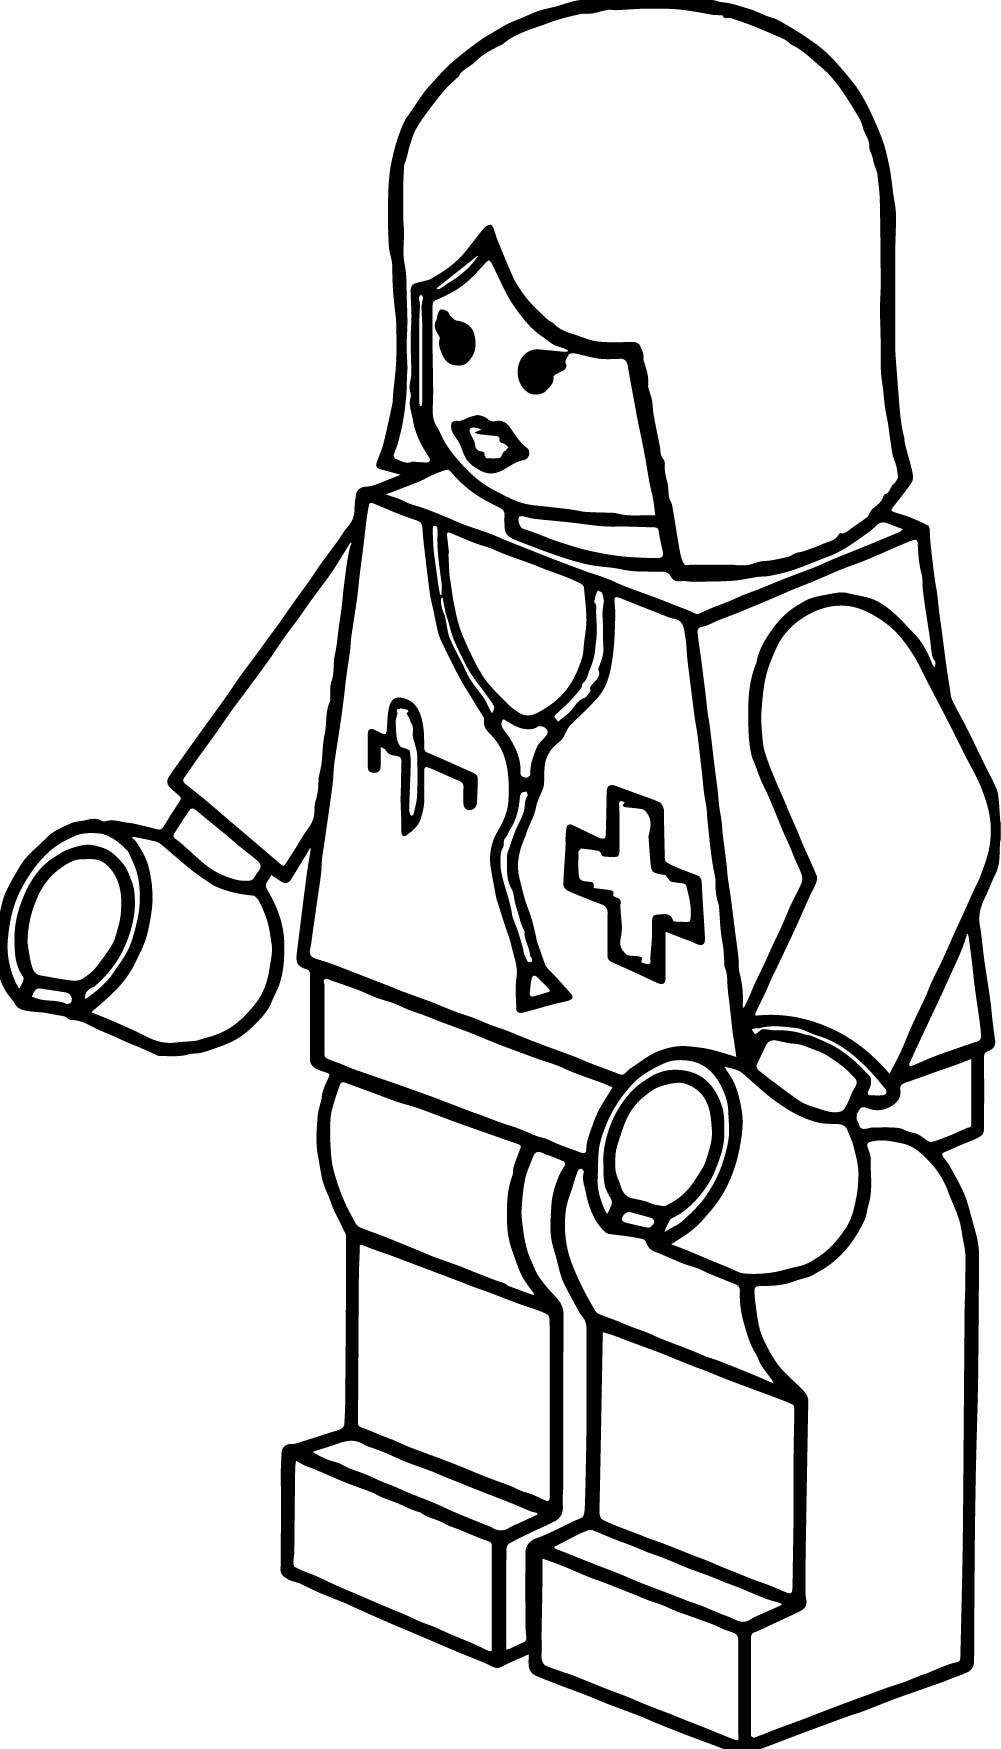 Doctor Lego Girl Robot Coloring Page | Wecoloringpage.com